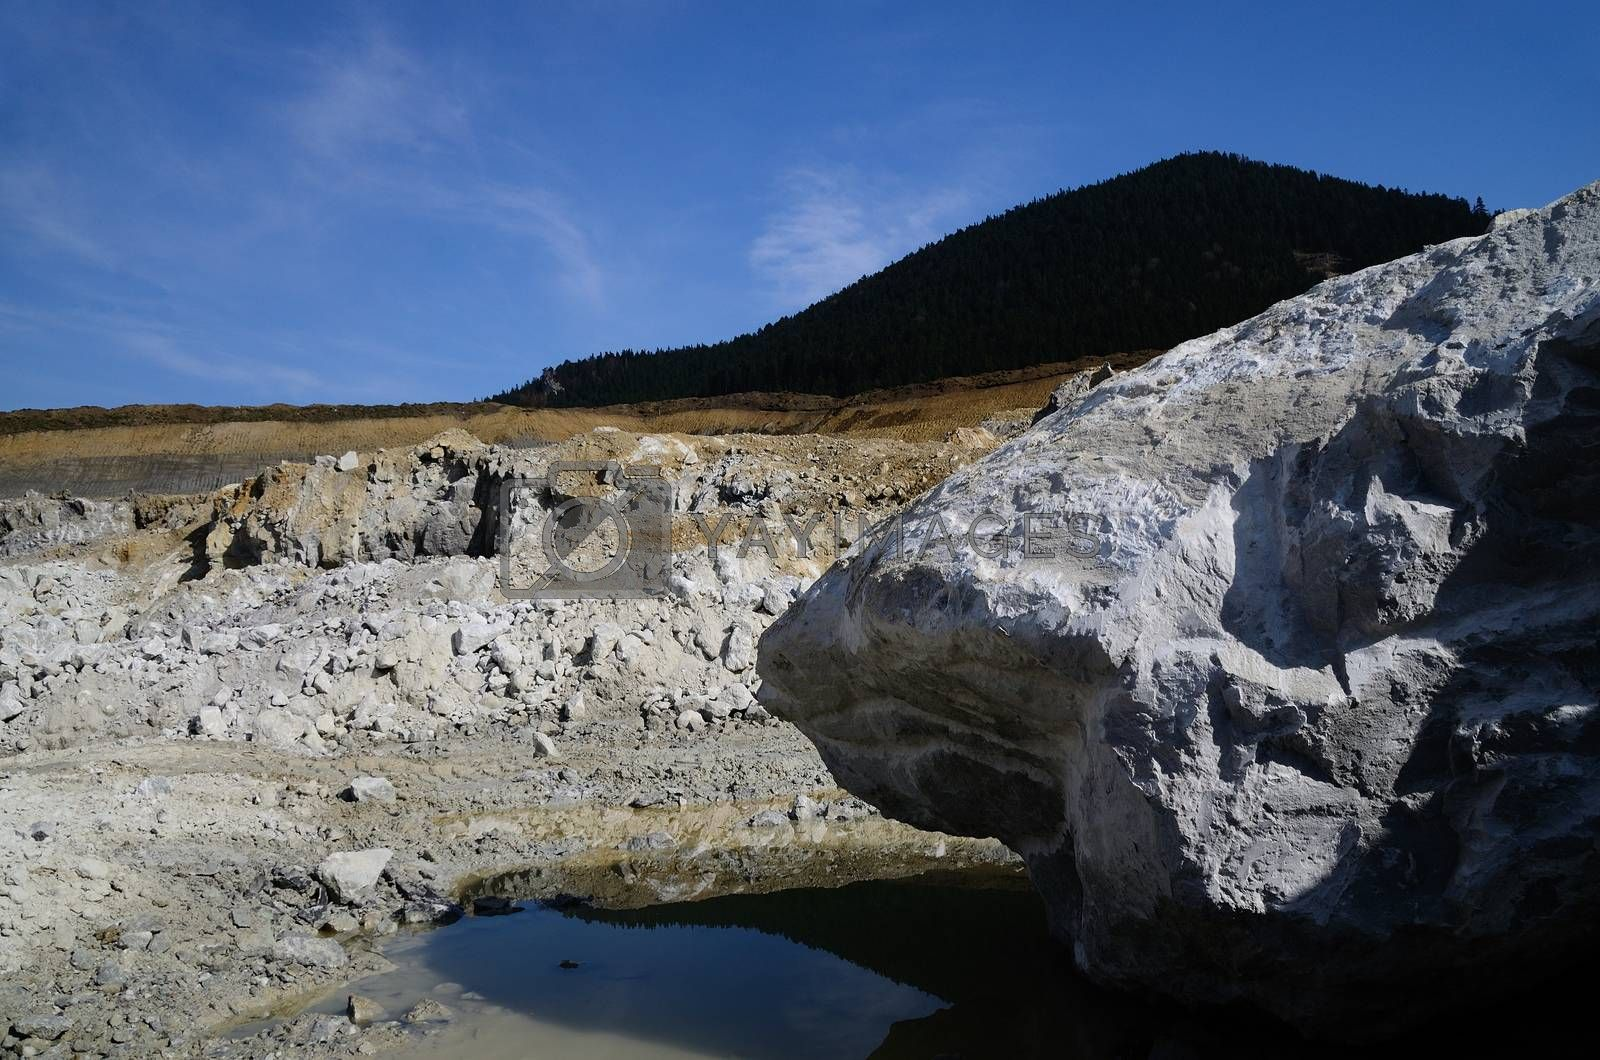 large quarry with water and reflection